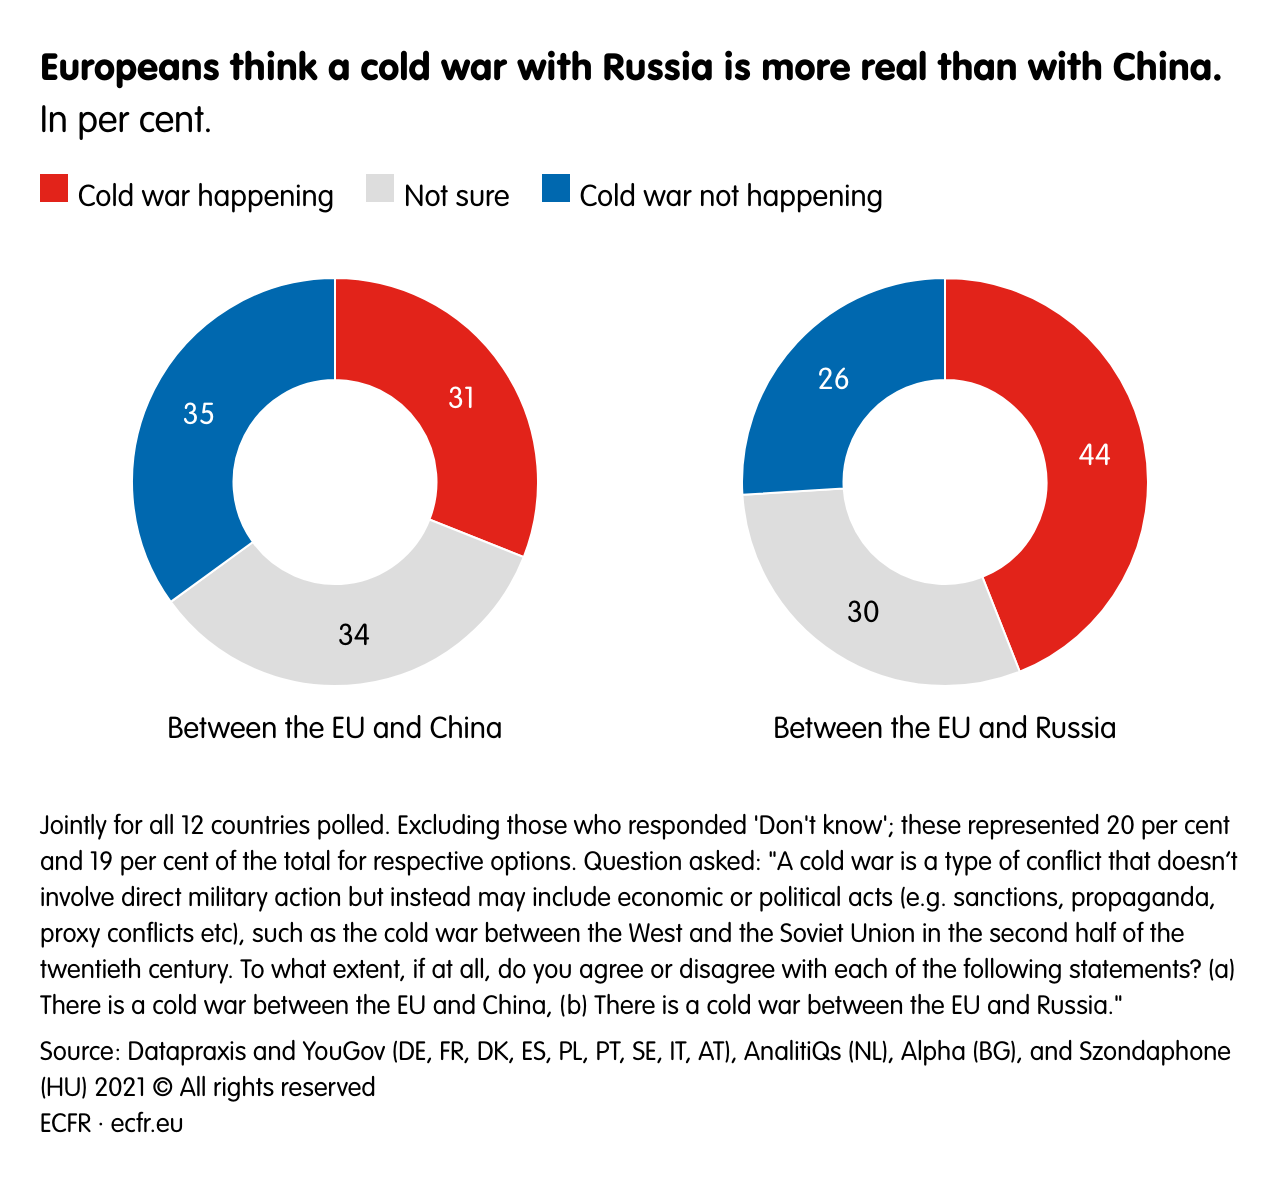 Europeans think a cold war with Russia is more real than with China.